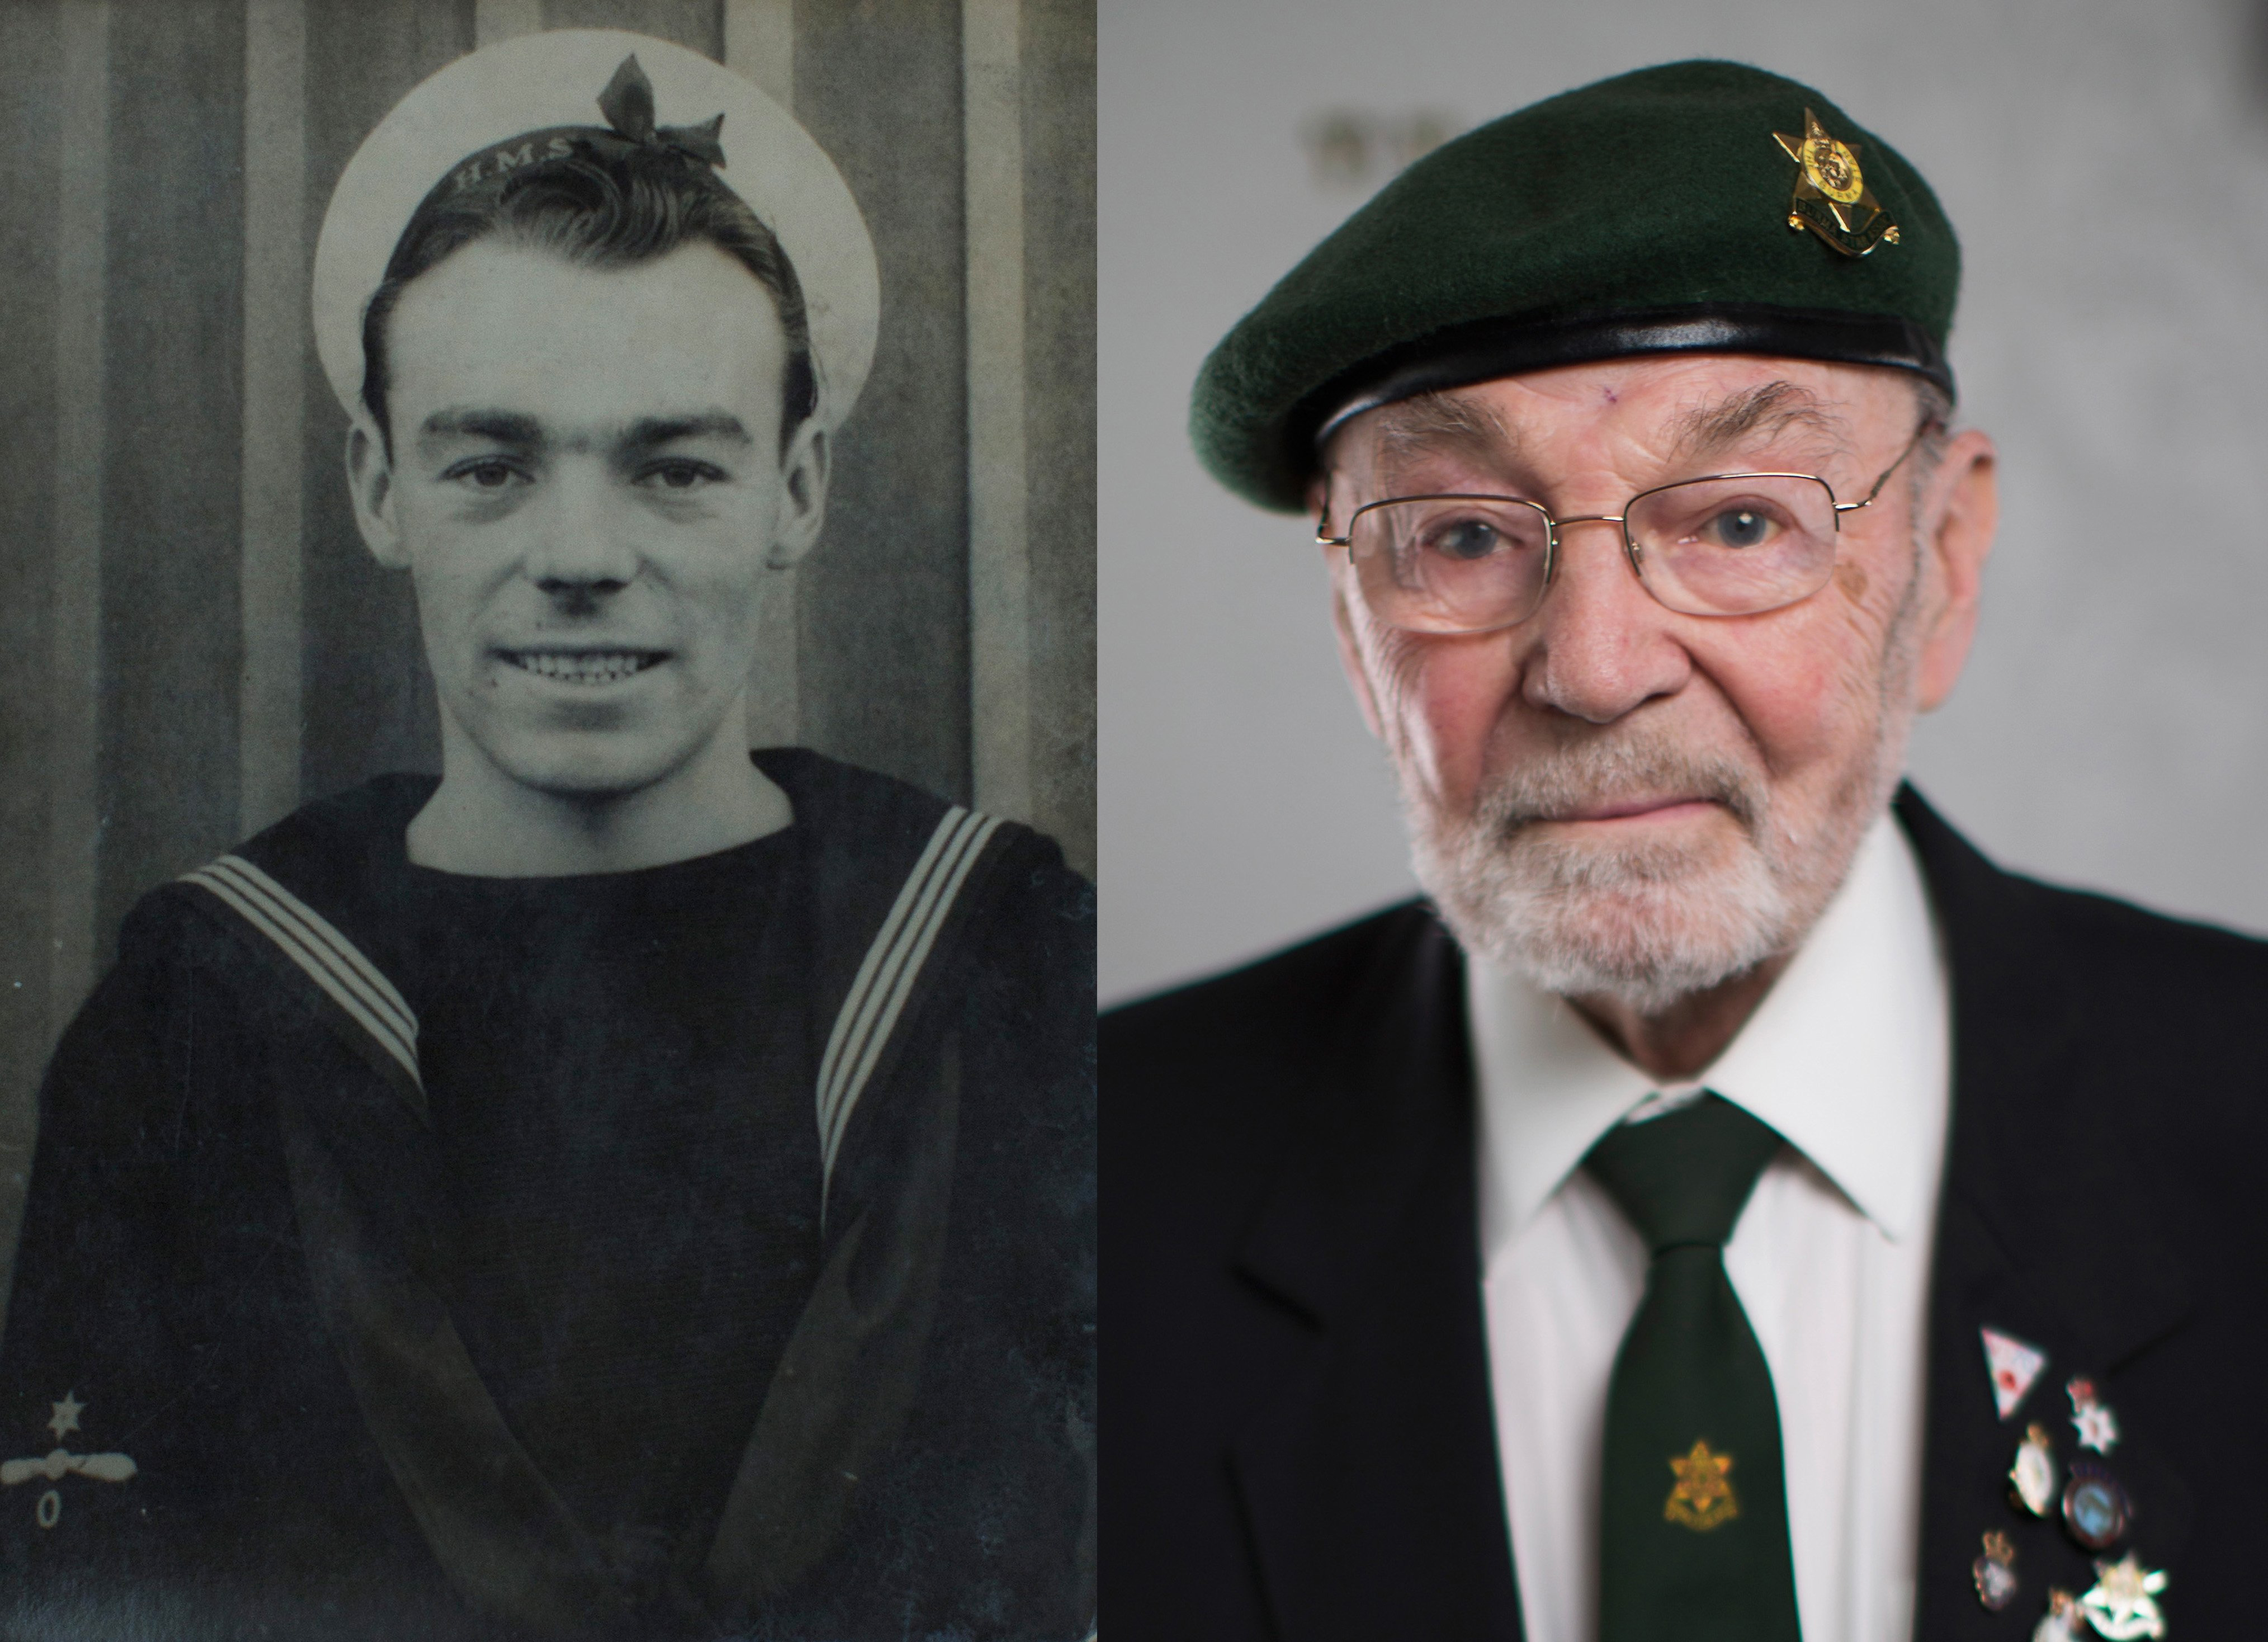 WWII veteran Jack Gordon as a young sailor during WWII and at his home, age 92, wearing his campaign medals and Burma Star beret on Aug. 3, 2015 in Ashton-in-Makerfield, England.